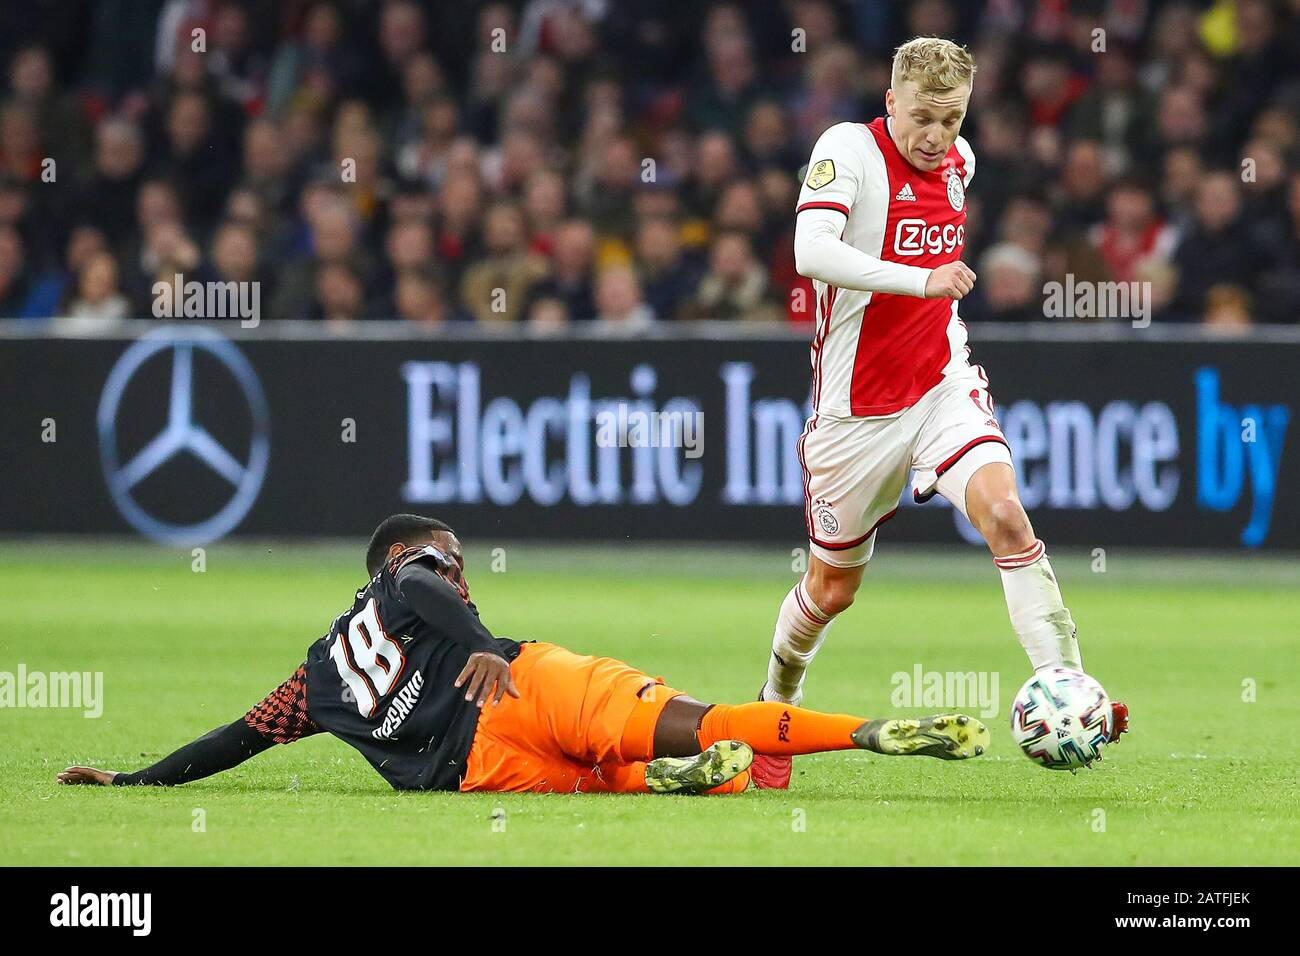 2 February 2020 Amsterdam The Netherlands Soccer Ajax V Psv Eredivisie 2019 2020 Pablo Rosario Of Psv Eindhoven Donny Van De Beek Of Ajax Stock Photo Alamy